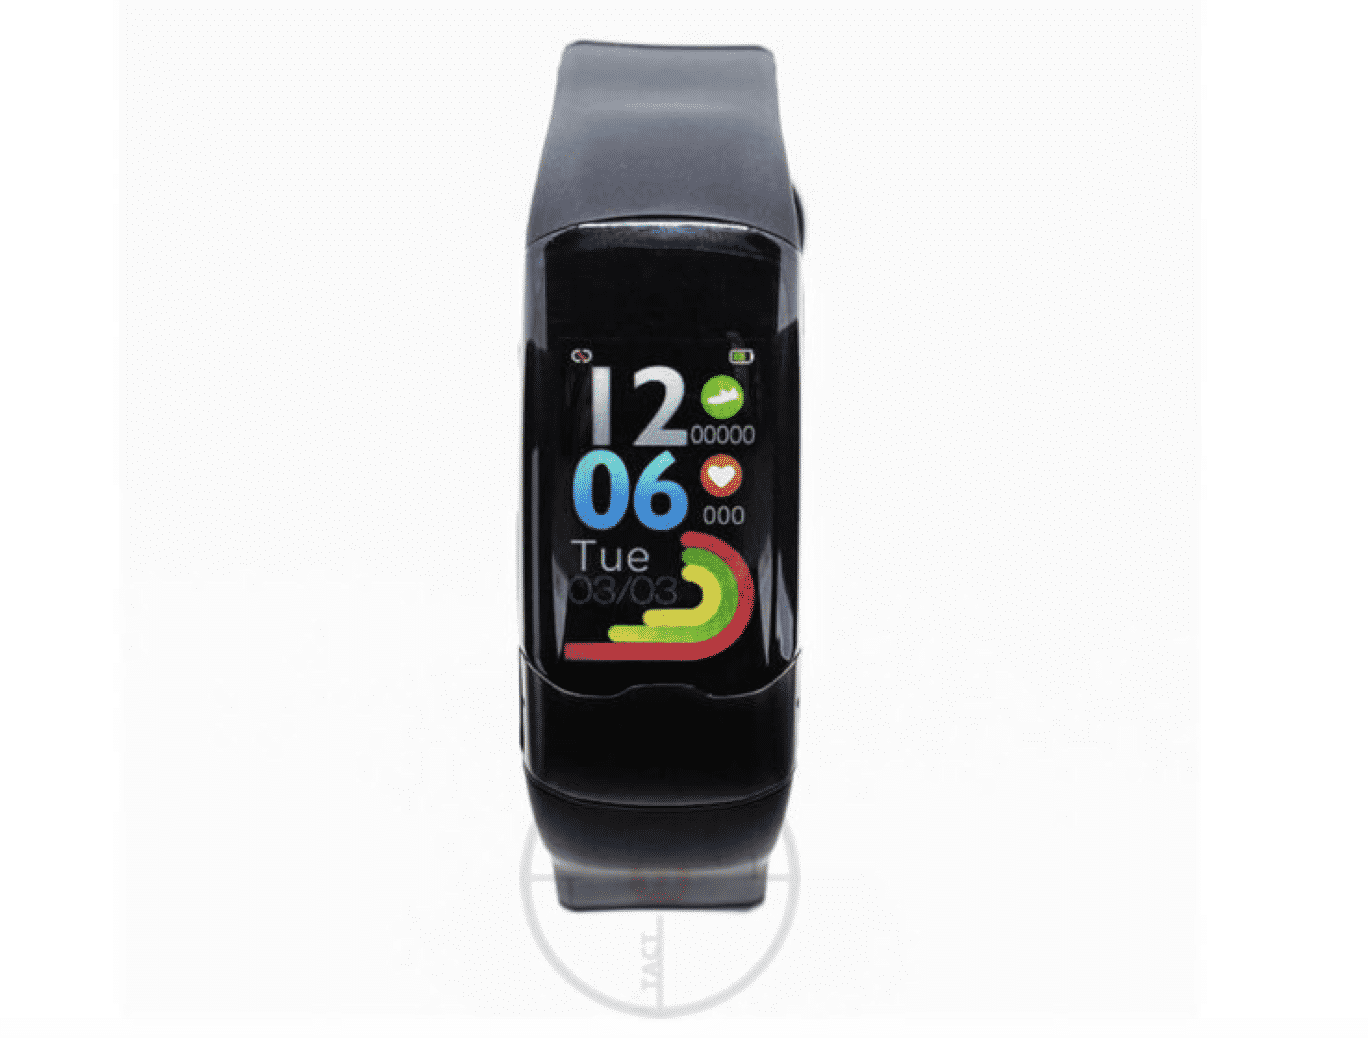 New Smart Fit Band by Makers of T1 Tact Watch is Apple iPhone and iOS Compatible